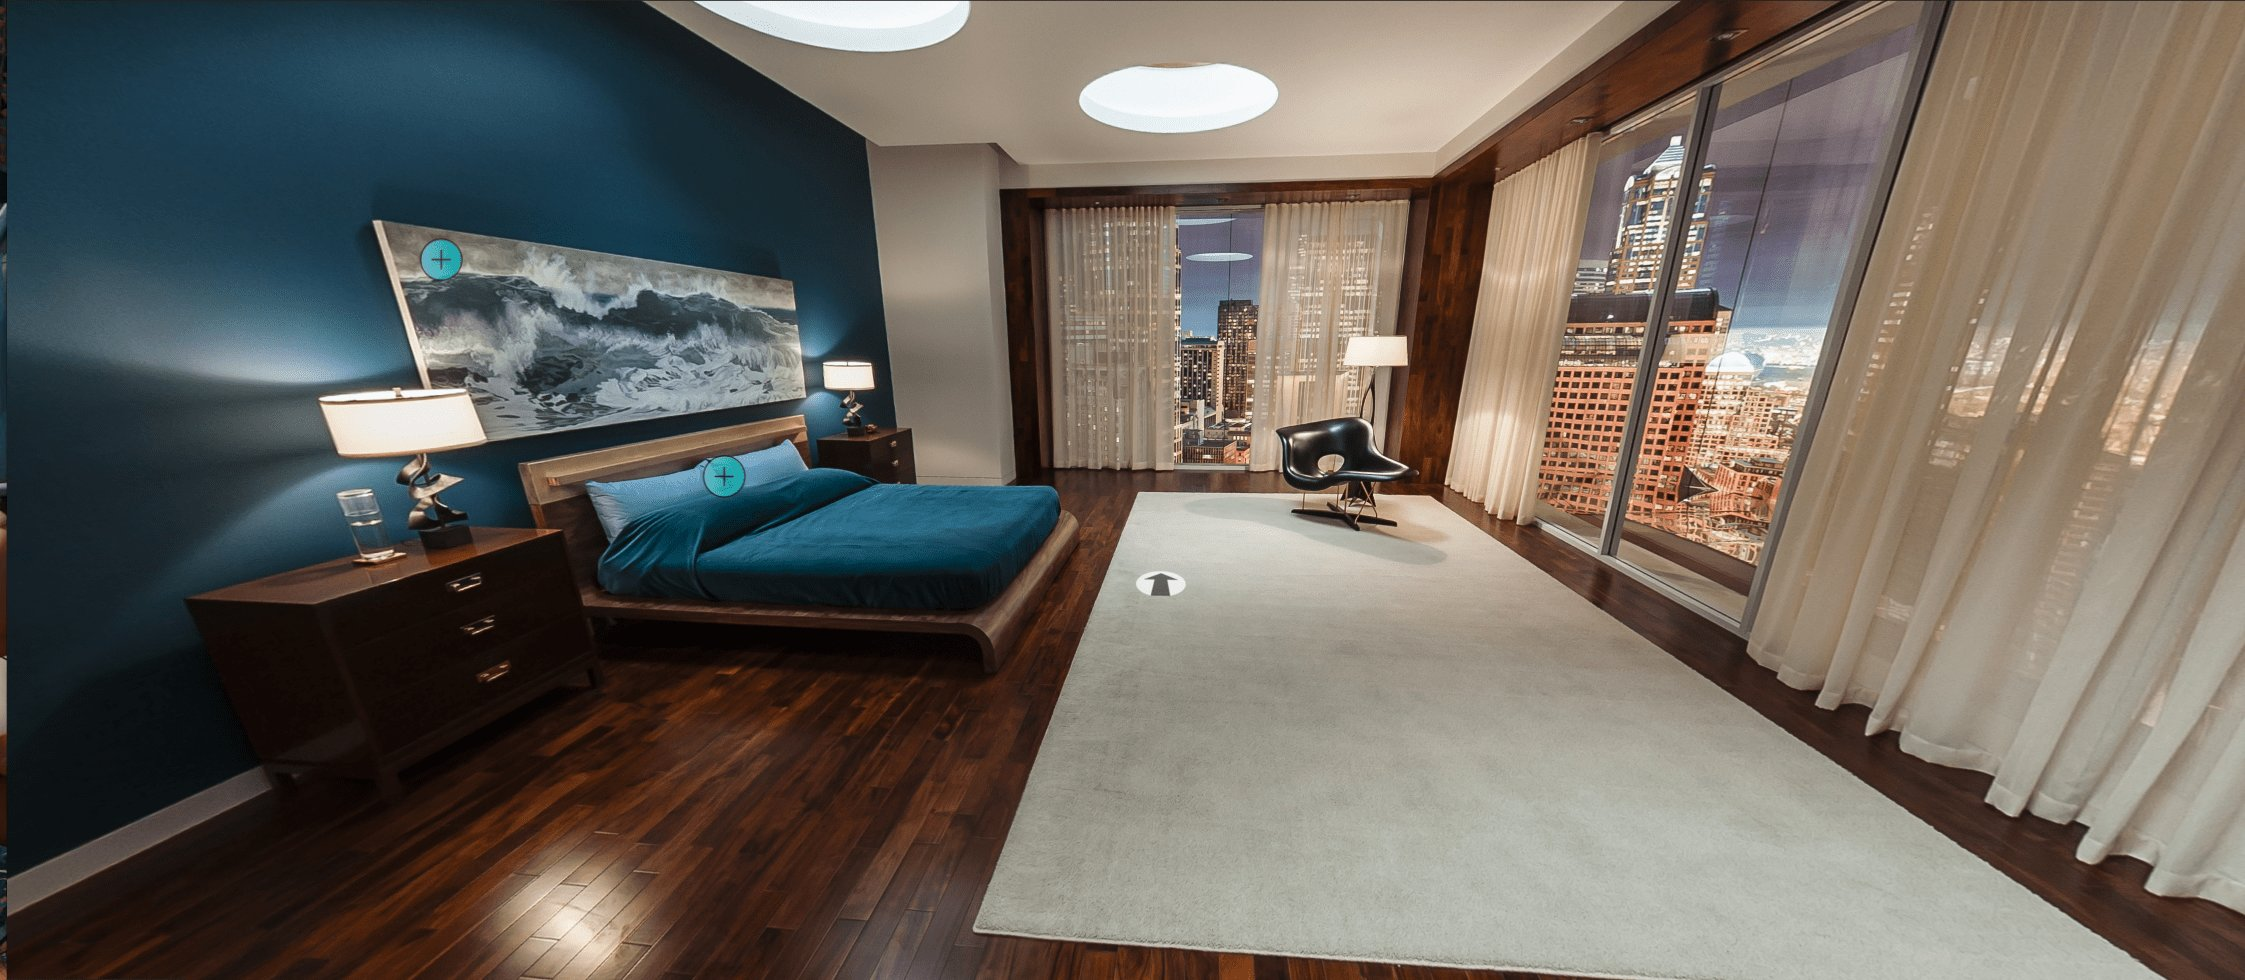 Best House Tour Fifty Shades Of Grey Christian Grey S With Pictures